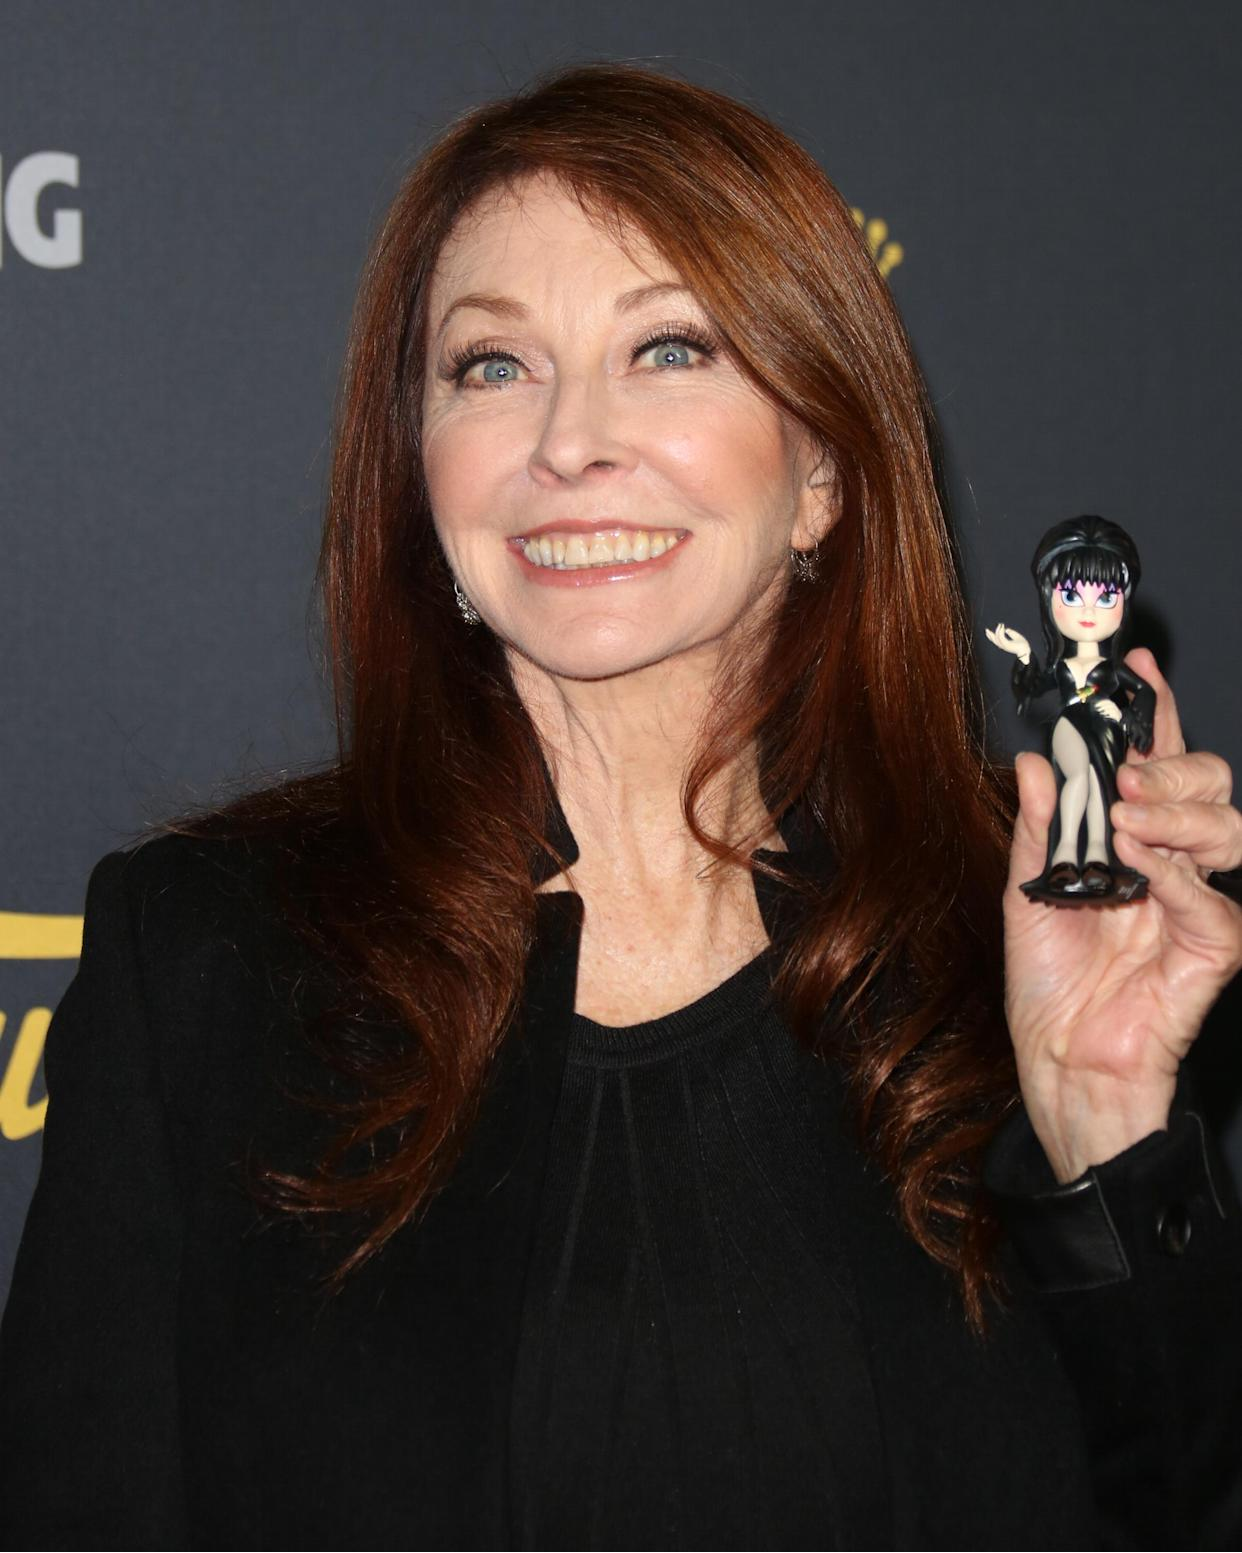 Cassandra Peterson with her alter ego in 2018.  (Photo: Paul Archuleta/Getty Images)